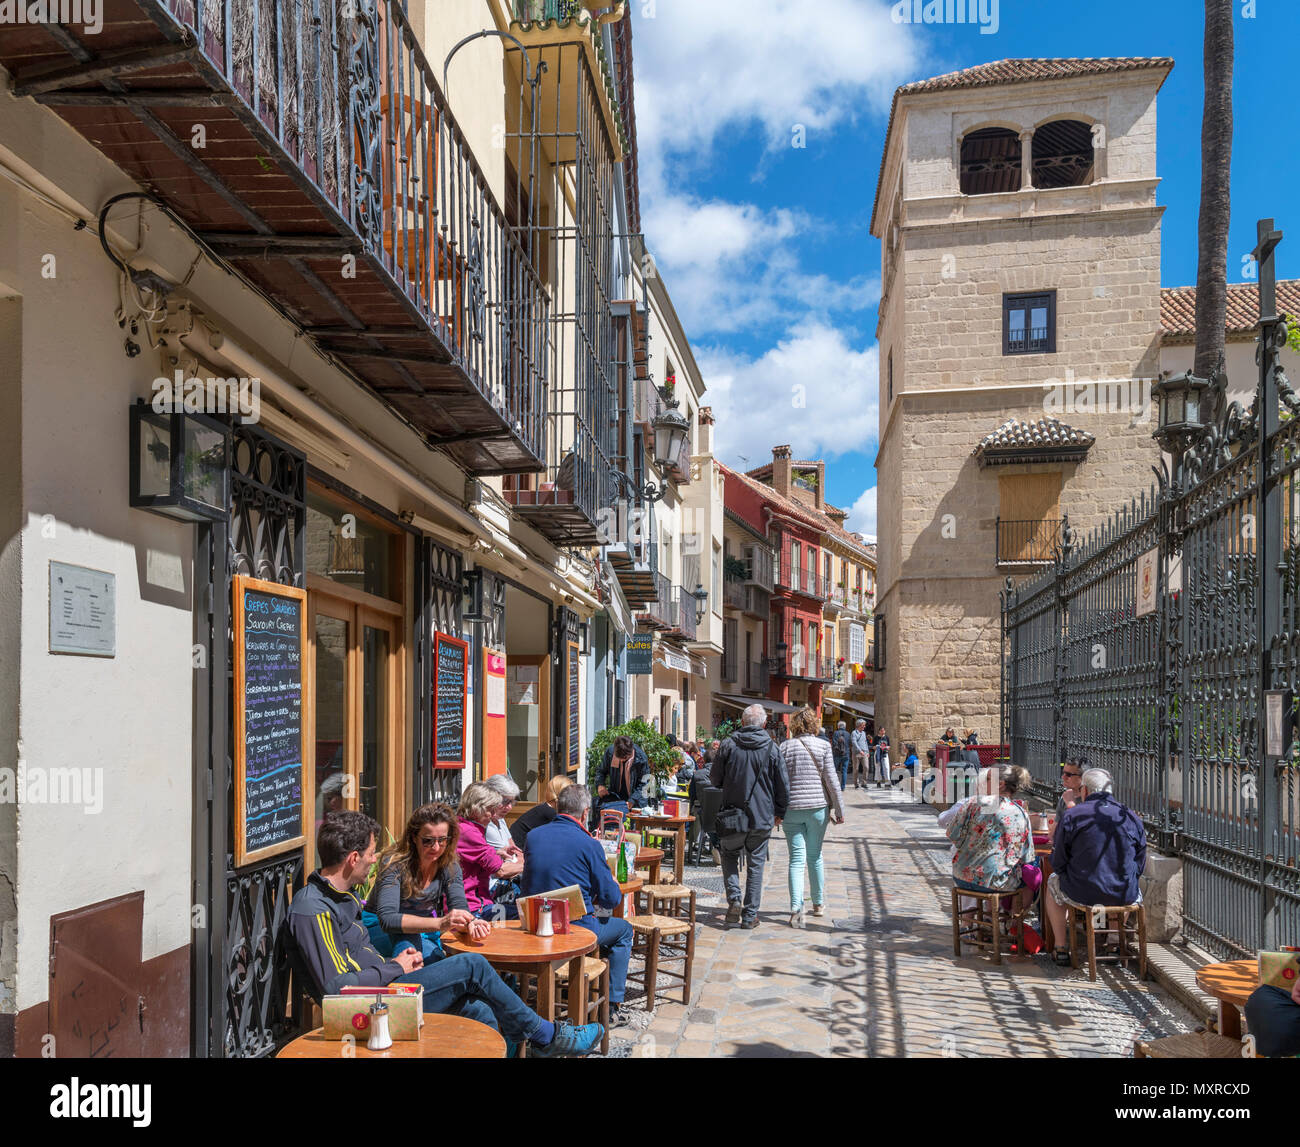 Cafe on Calle San Agustín looking towards the Picasso Museum, Malaga, Costa del Sol, Andalucia, Spain - Stock Image